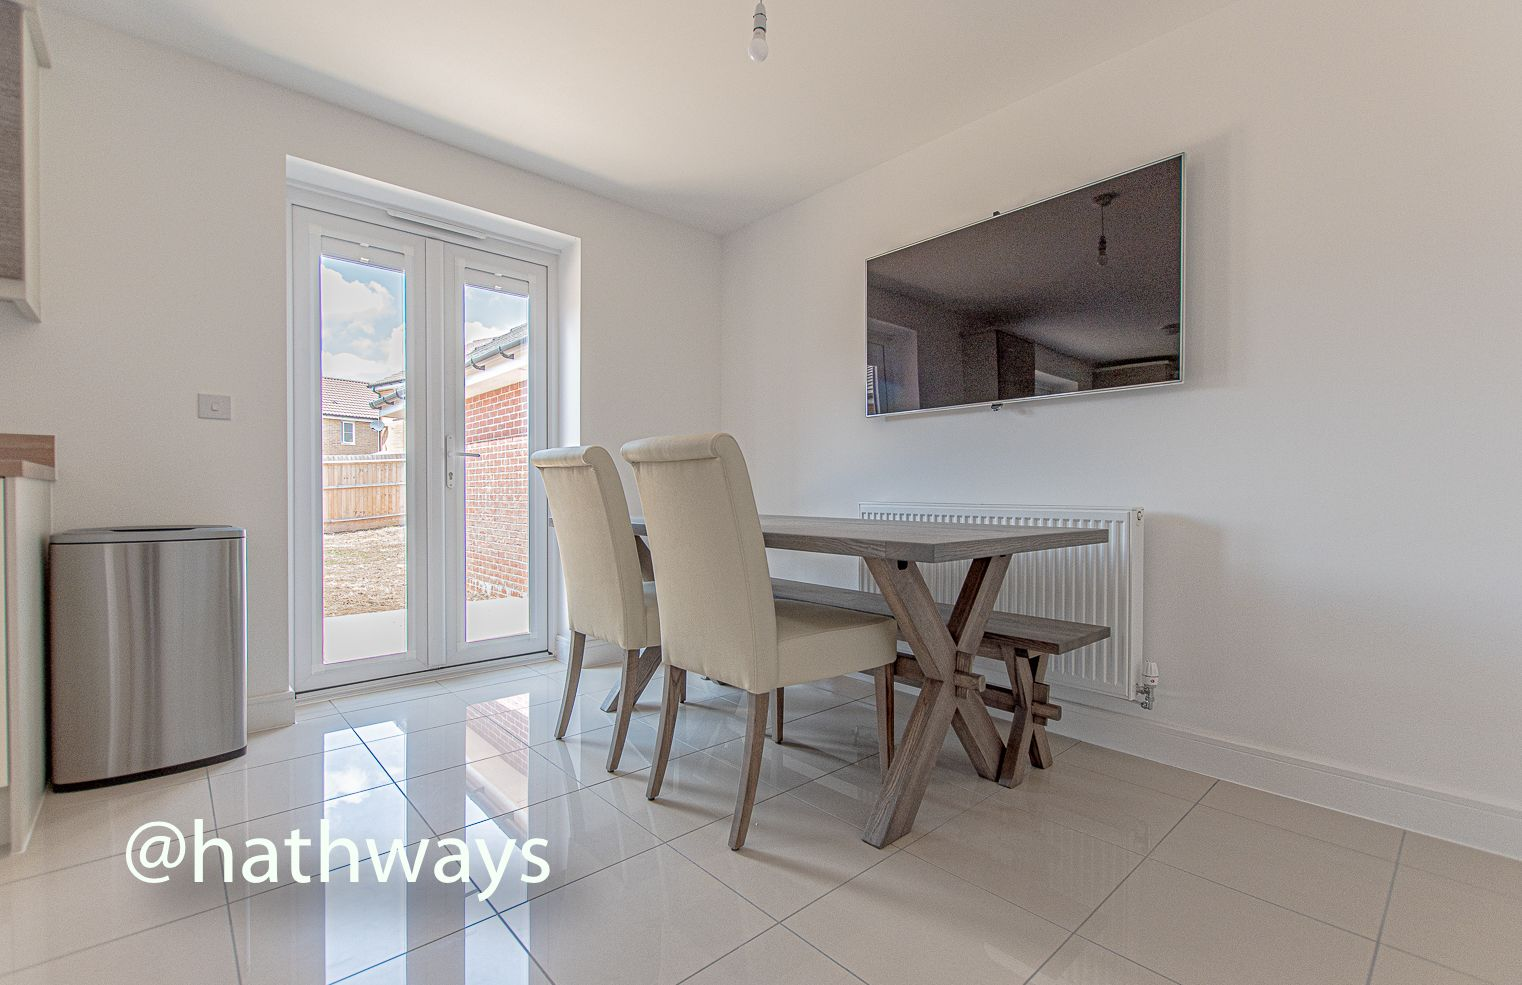 4 bed house for sale in Cwrt Celyn  - Property Image 19